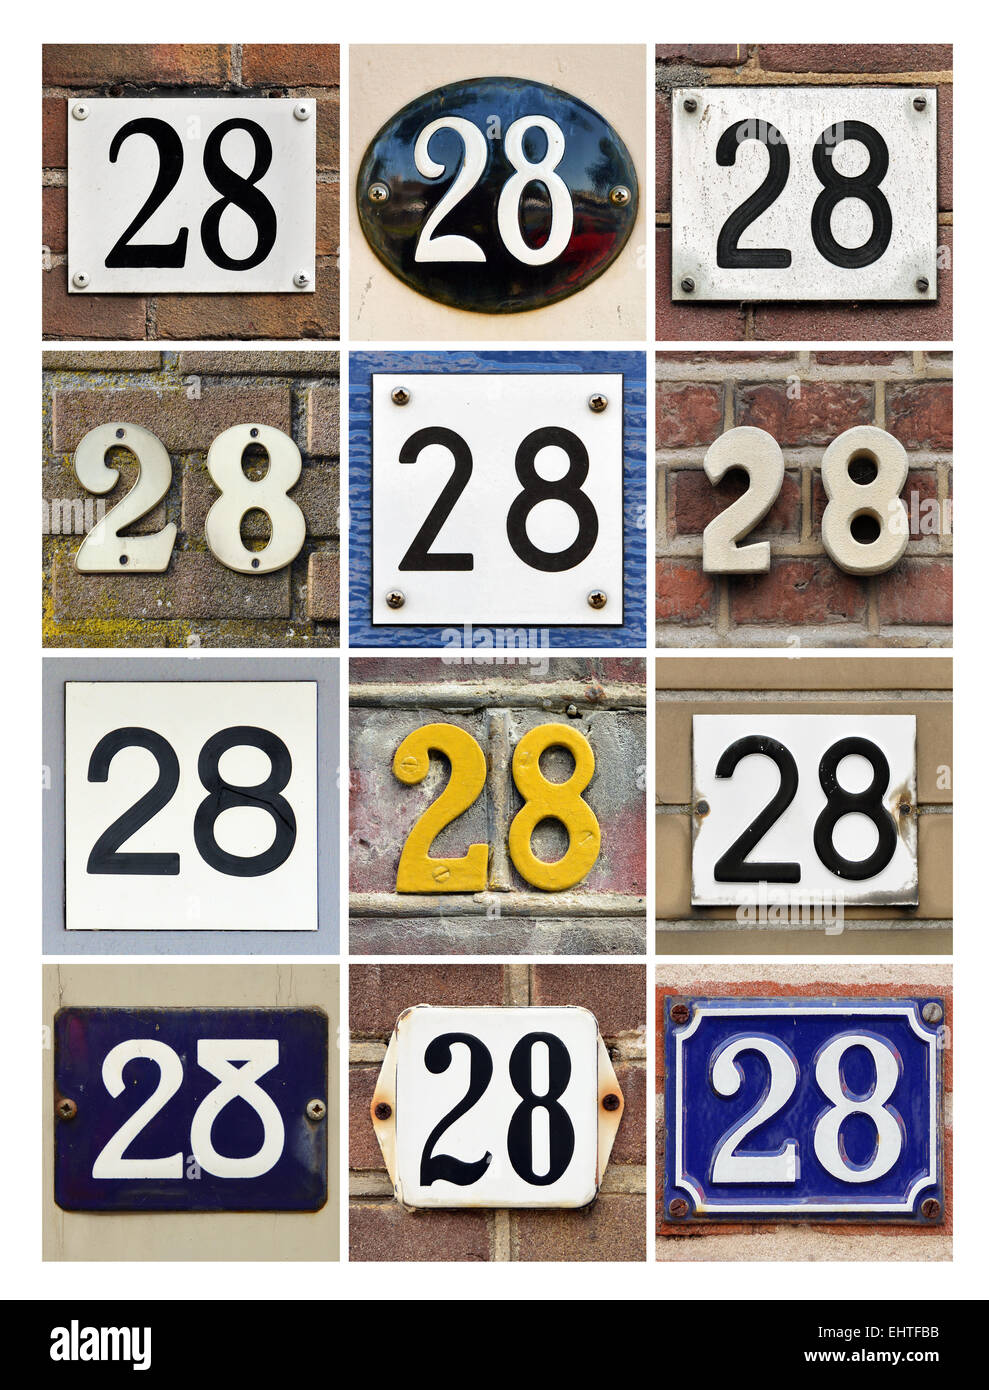 Number 28 - Collage of House Numbers Twenty-eight - Stock Image